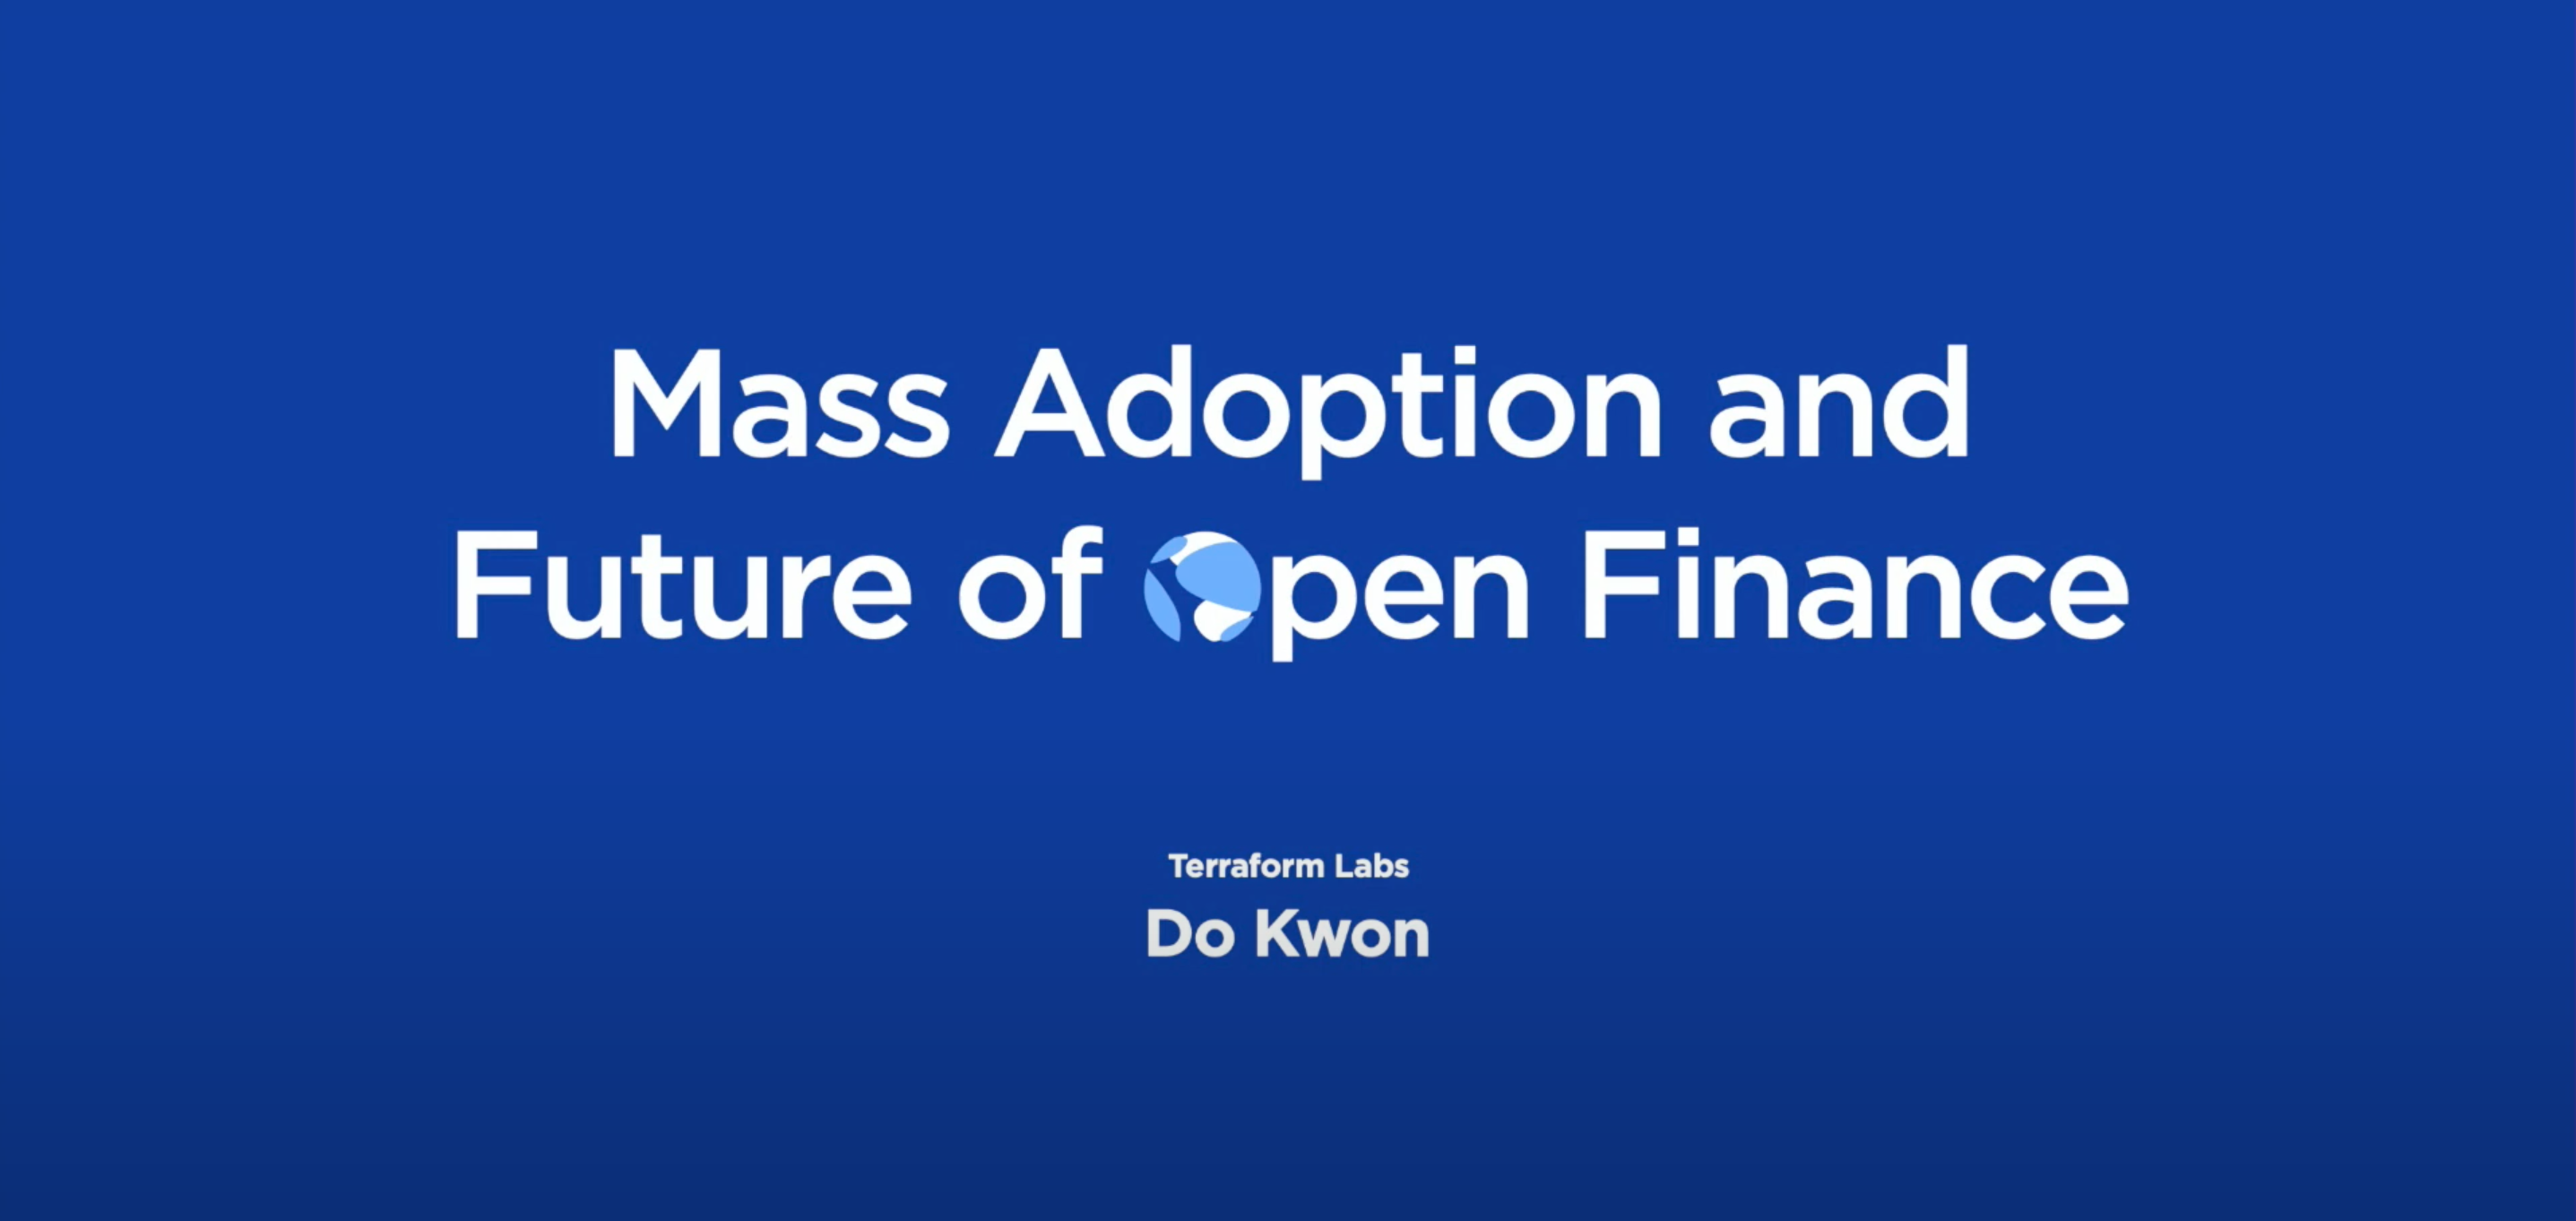 Mass Adoption and the Future of Open Finance